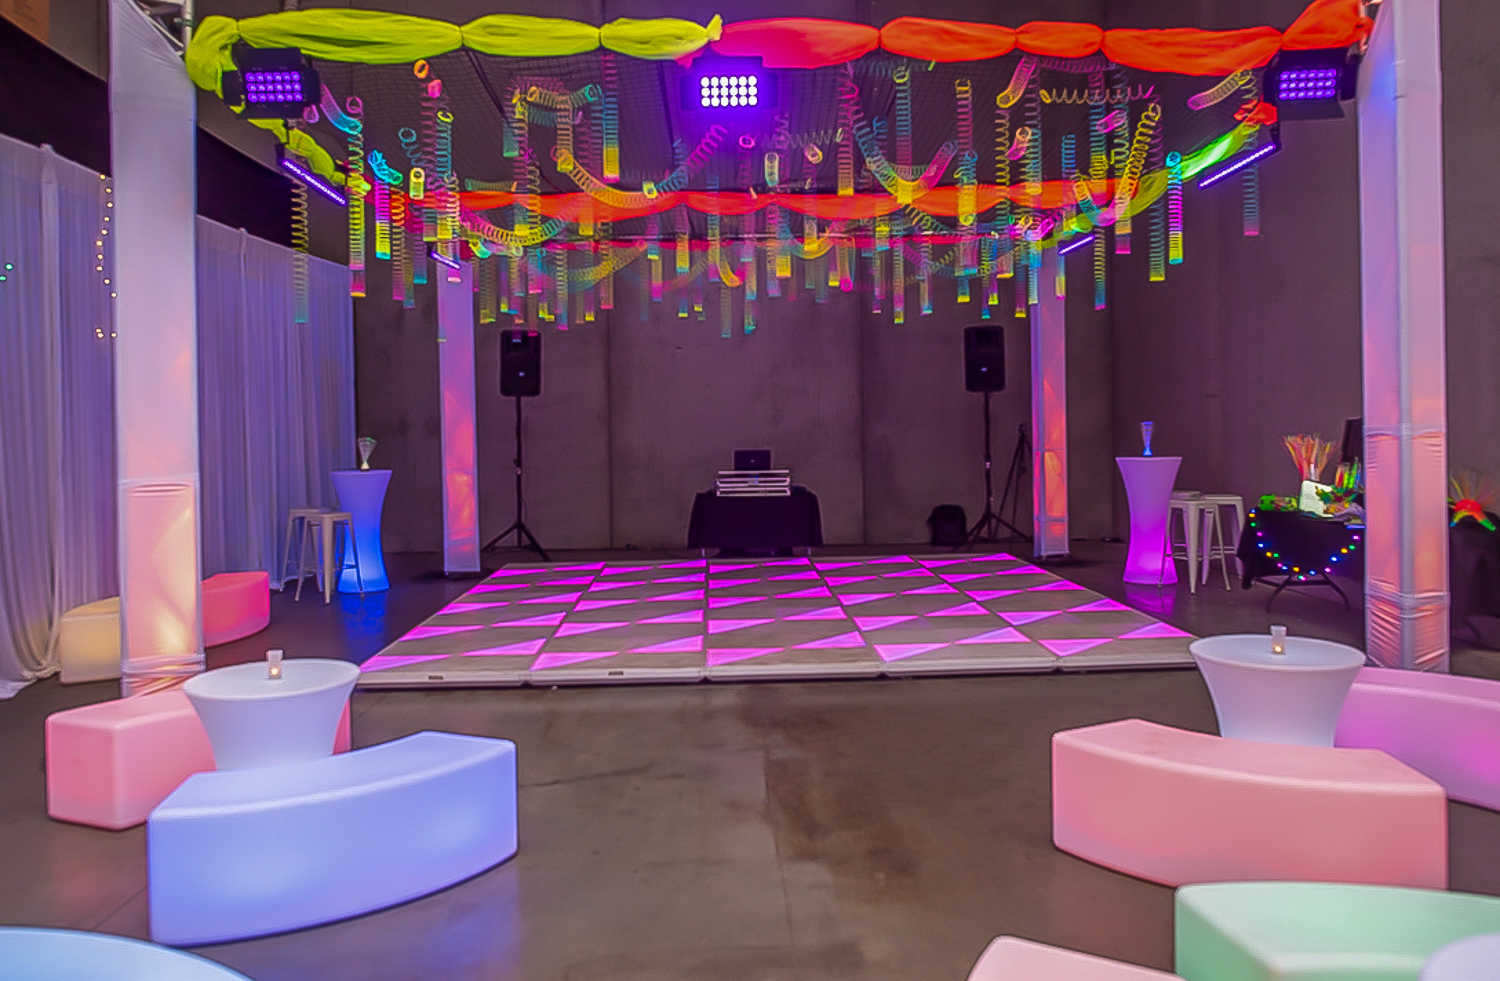 glowing furniture and dancefloor hire melbourne for bat mitzvah